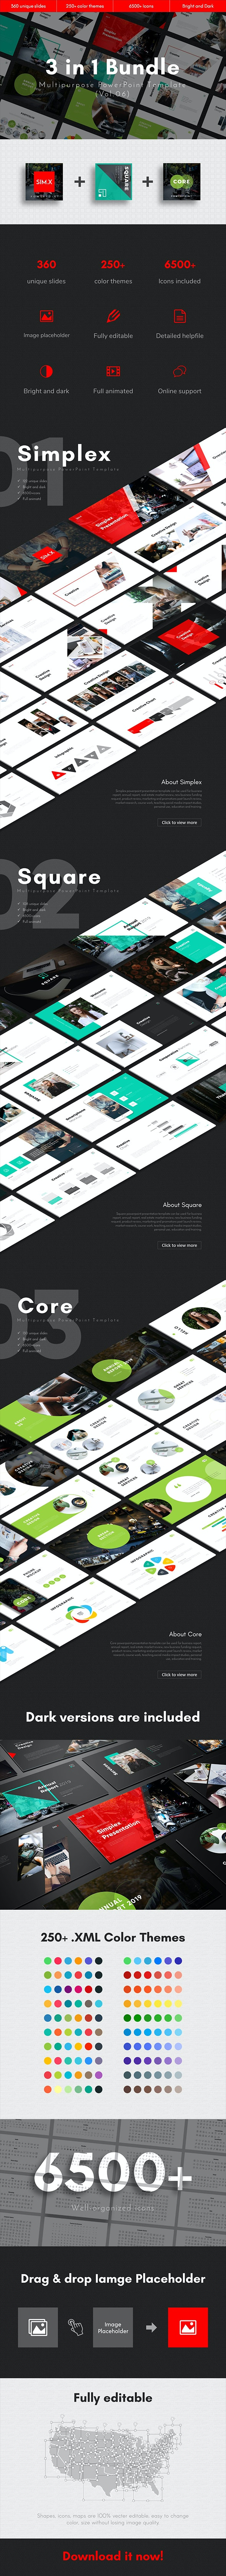 3 in 1 Multipurpose PowerPoint Template Bundle (Vol.06) - Business PowerPoint Templates